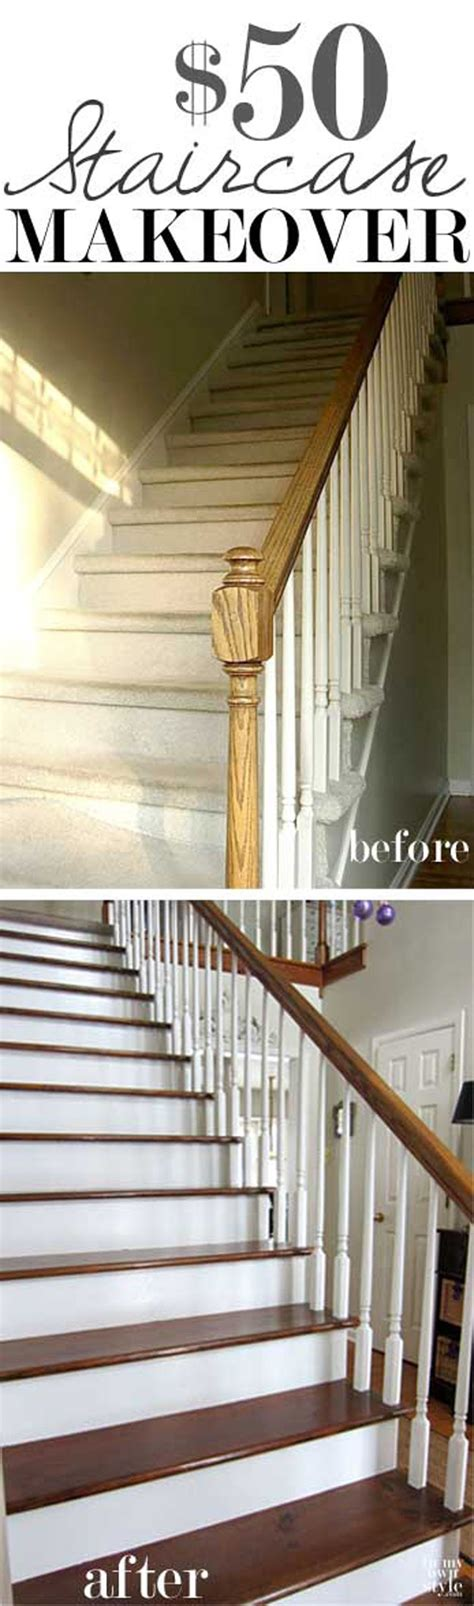 Staircase Makeover Ideas Easy Diy Home Improvement Projects Diy Ready